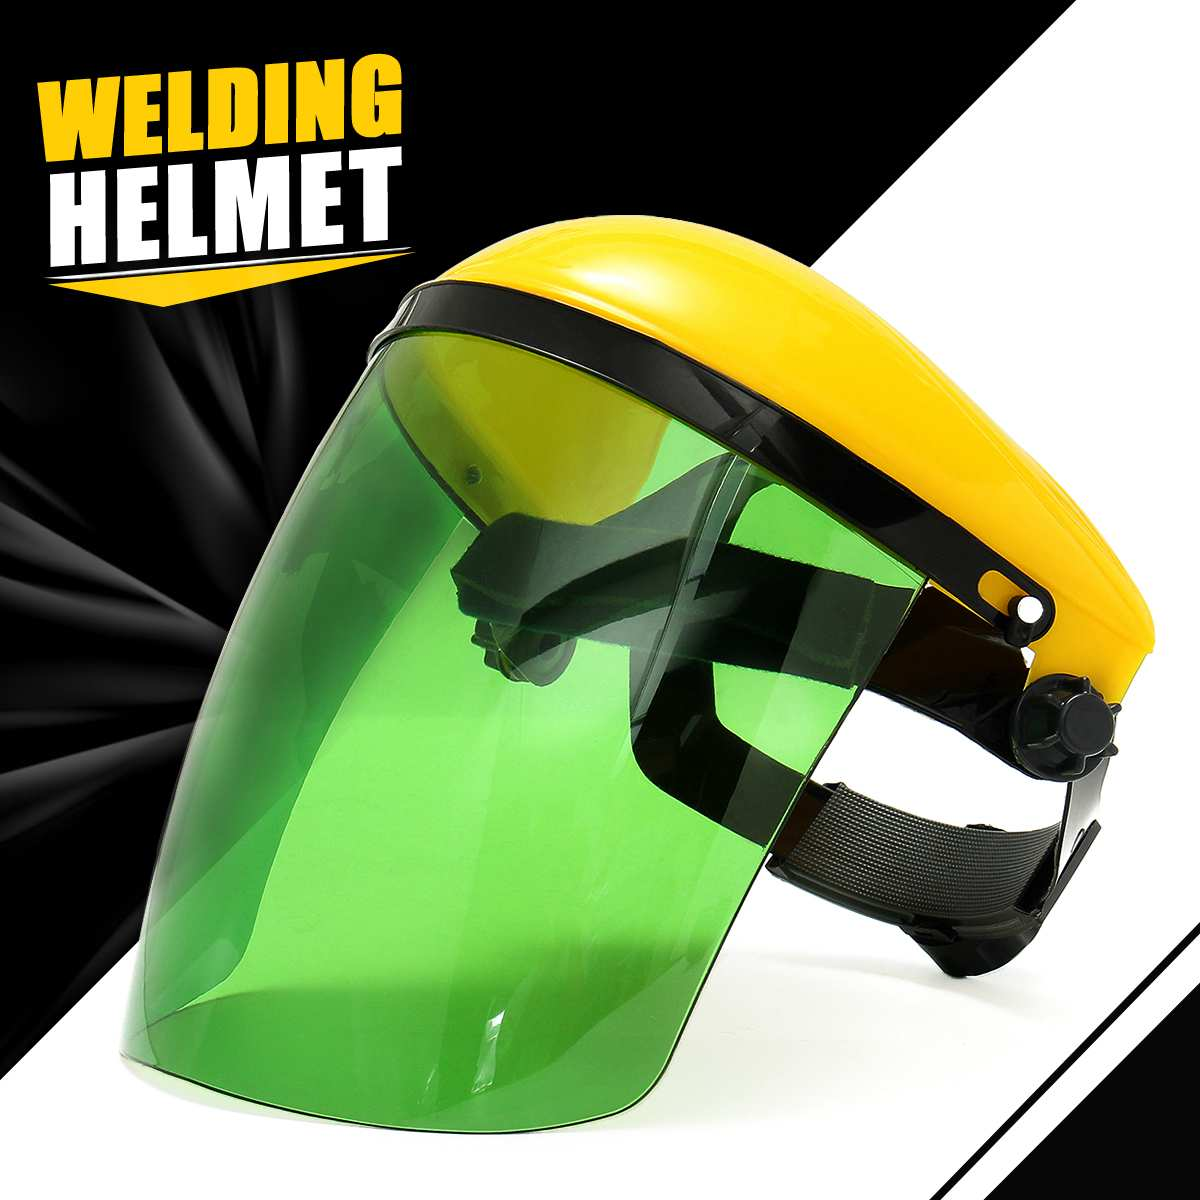 US $9 87 48% OFF|FORGELO New ARC Welding Helmet Mask Eye Protection Brand  with Safety Goggles for Welder Working Grinding Scratch resistant-in  Welding